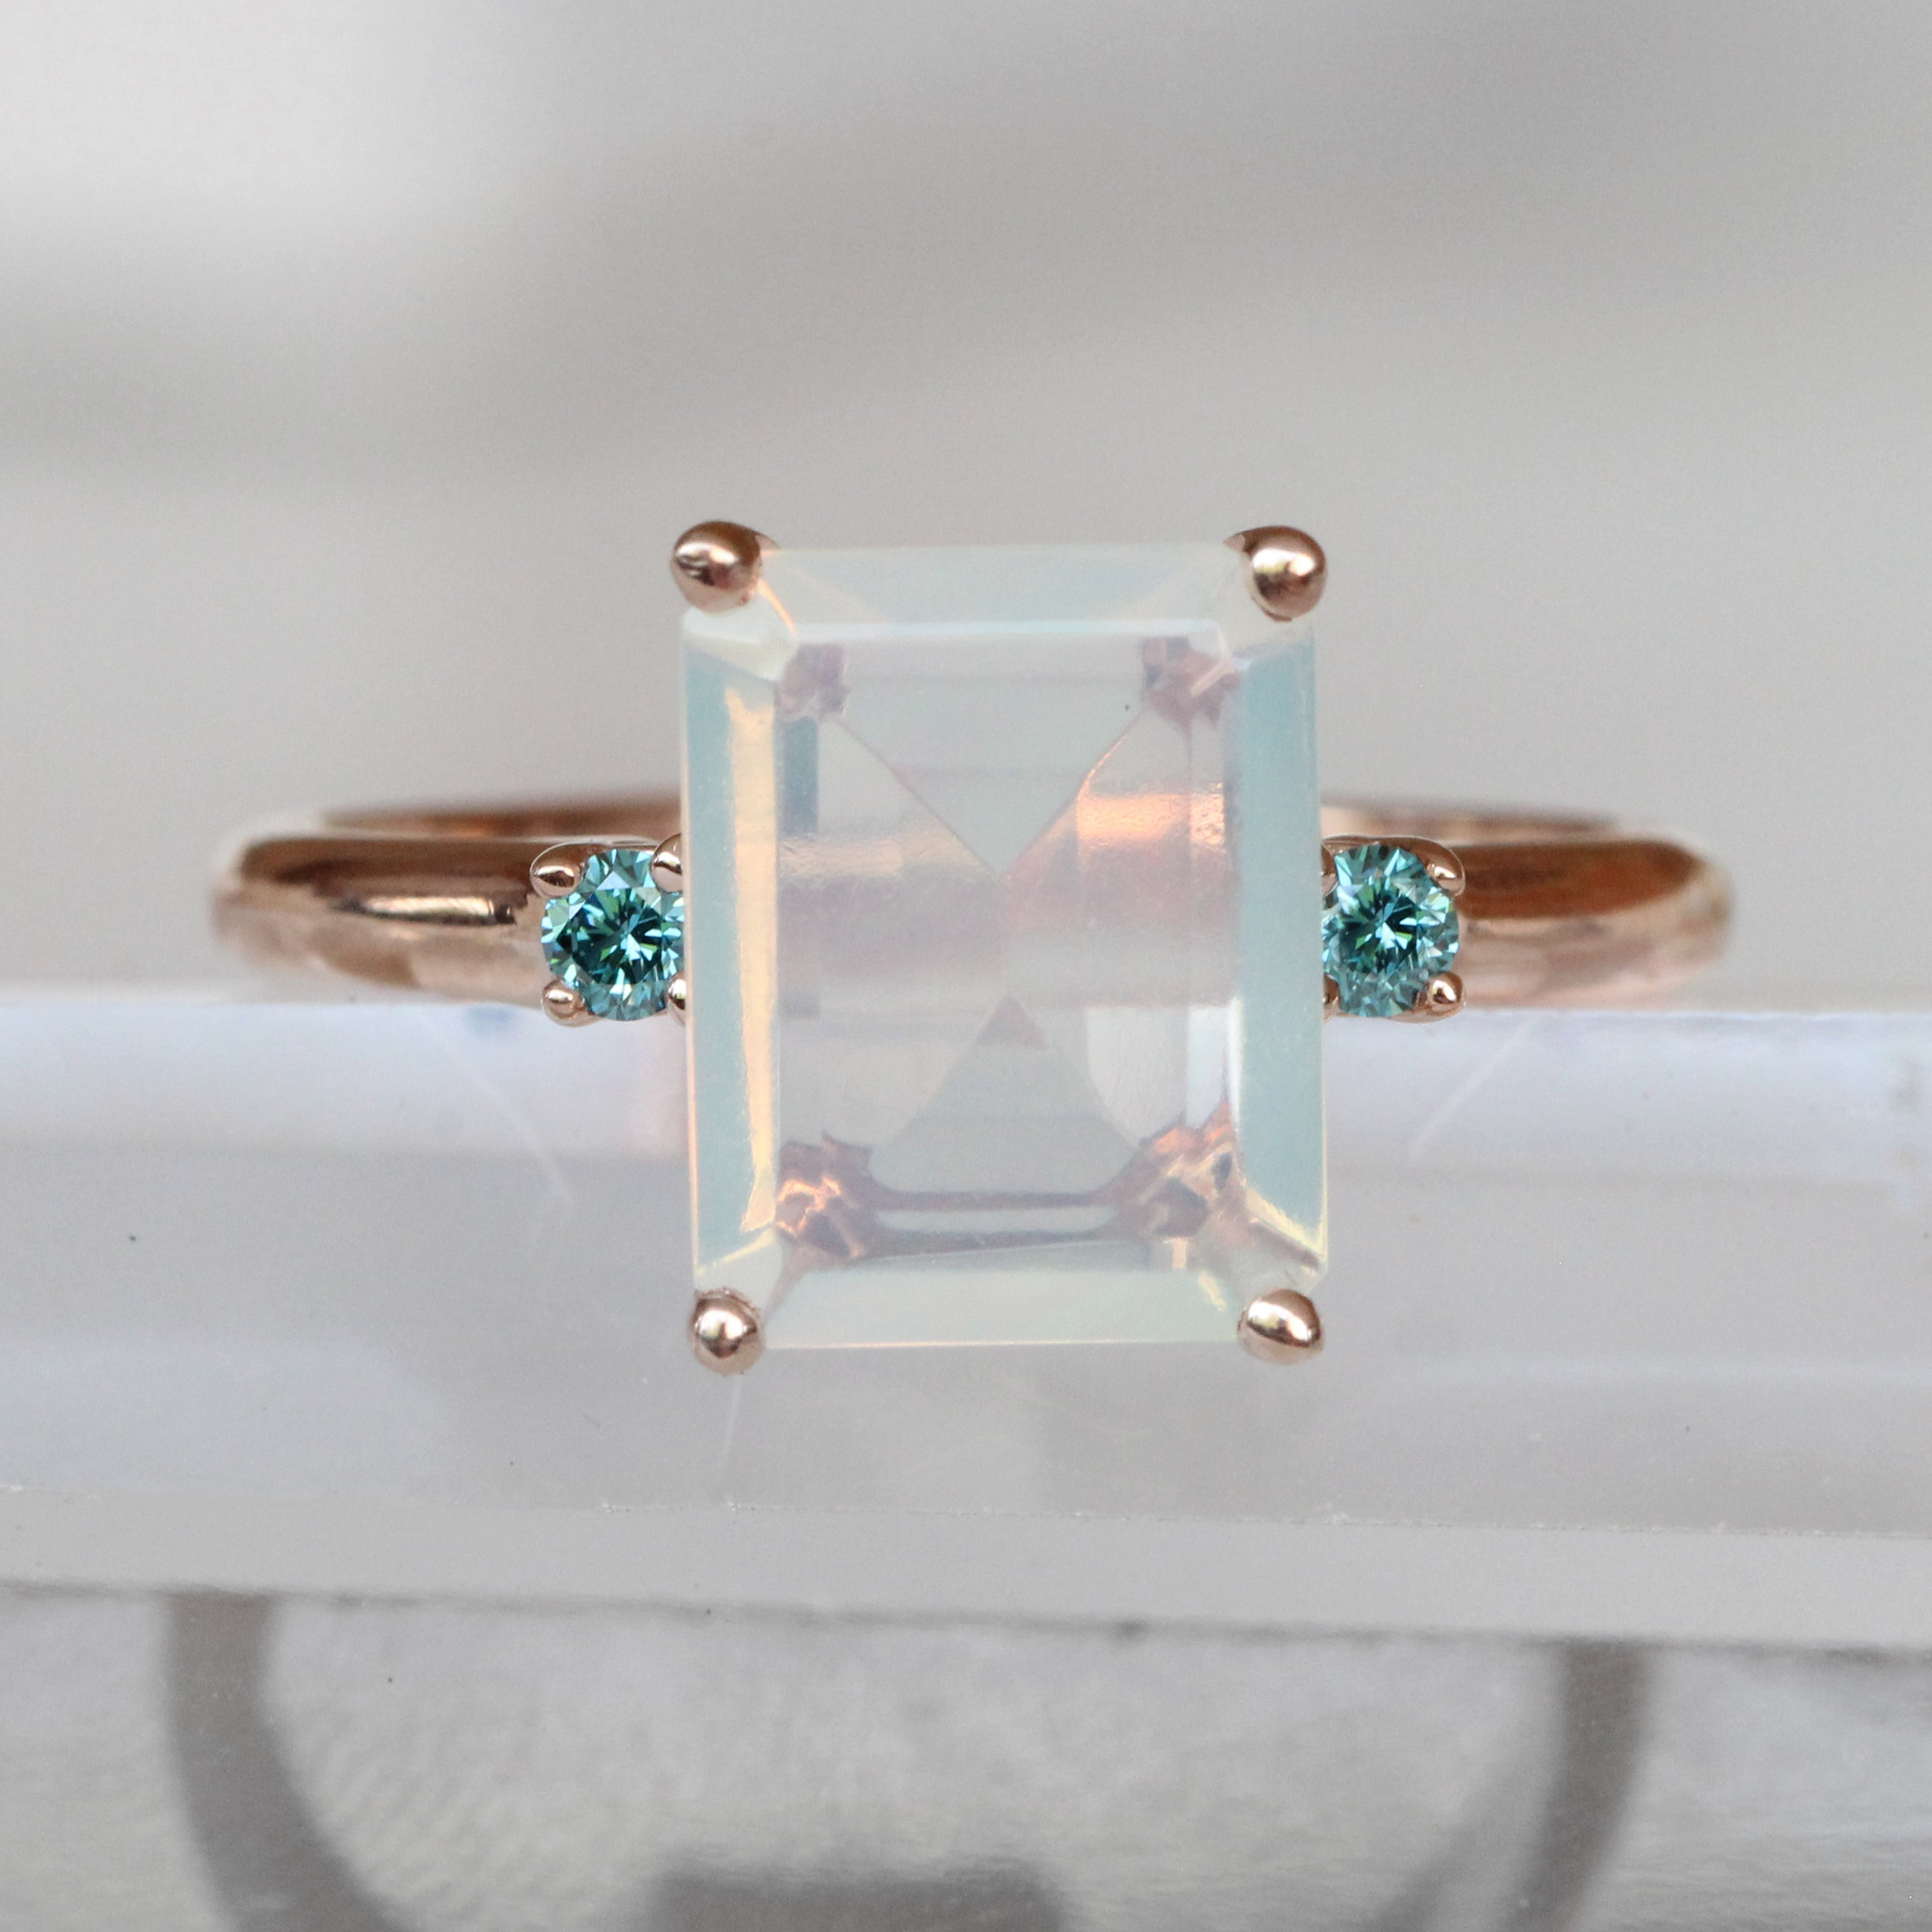 Terra Ring - Opal and blue diamonds - ready to size and ship - Salt & Pepper Celestial Diamond Engagement Rings and Wedding Bands  by Midwinter Co.